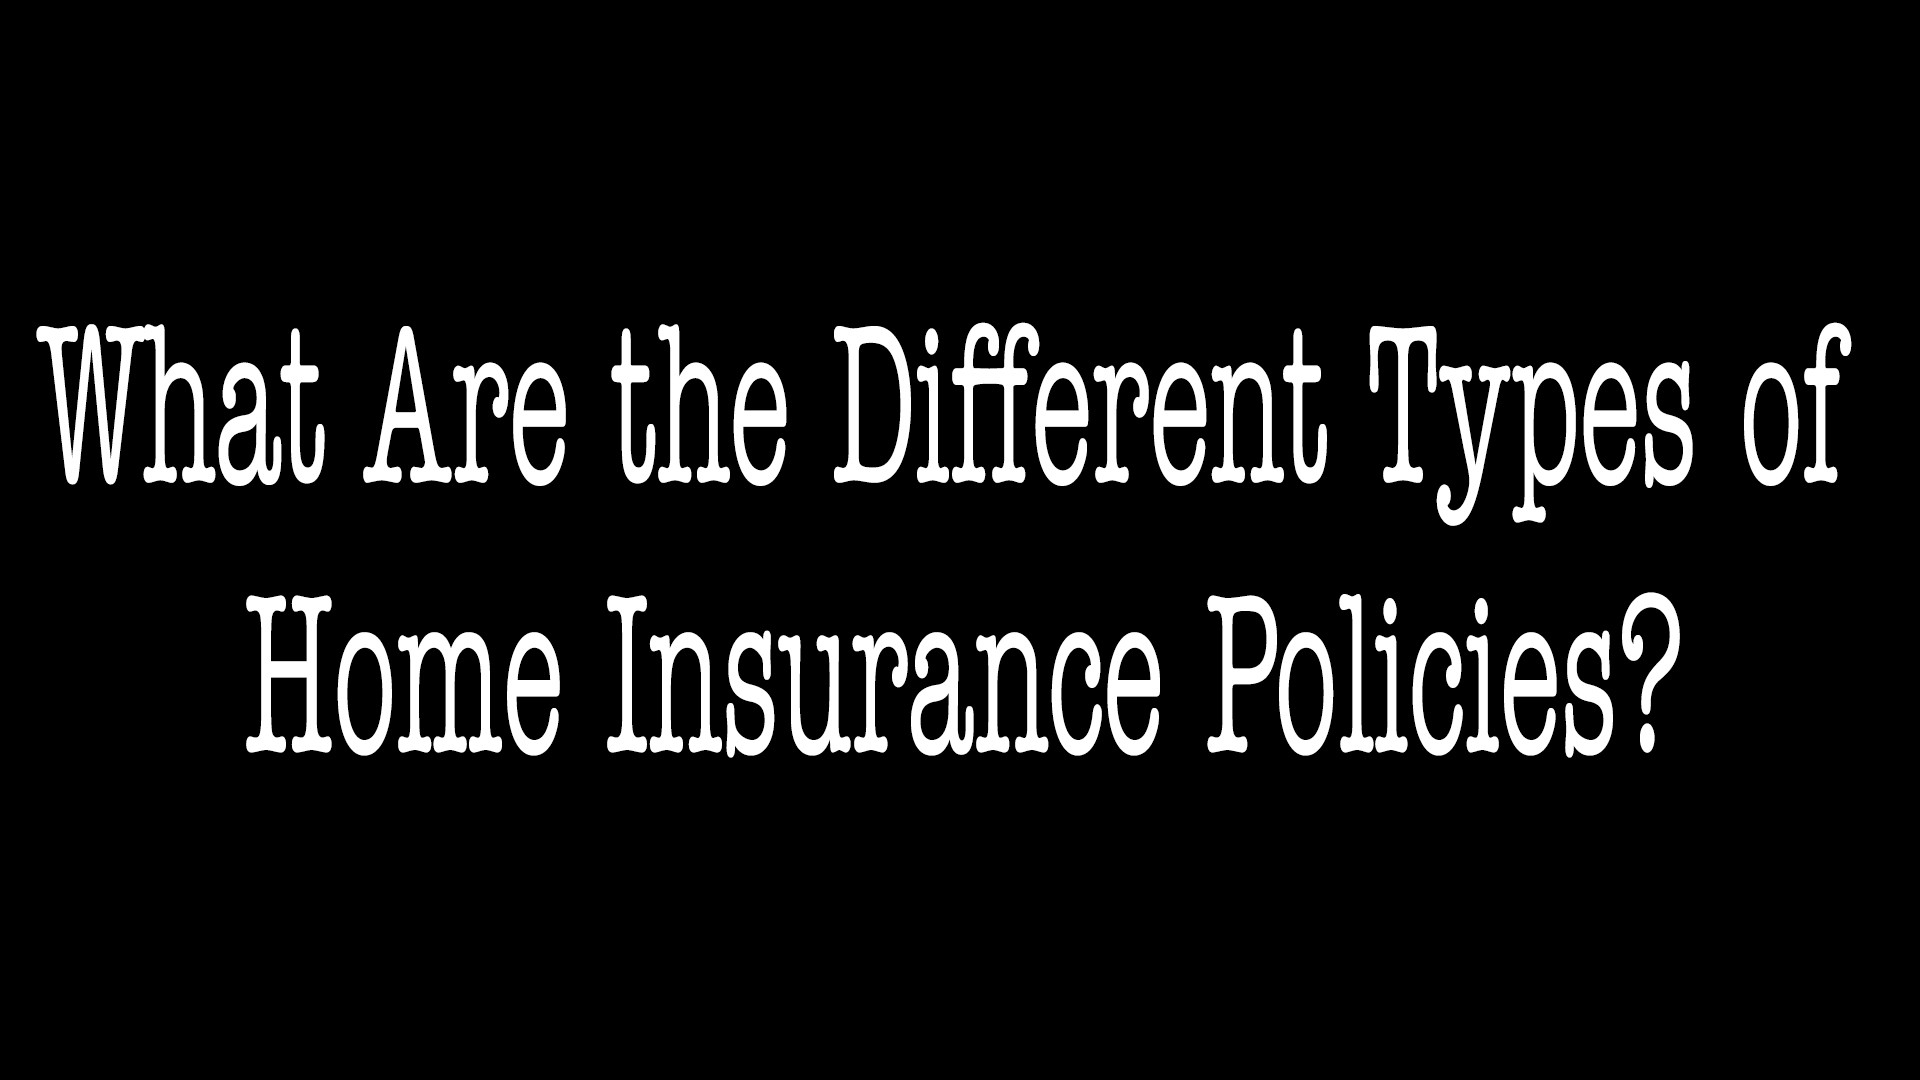 What Are The Different Types Of Home Insurance Policies - ALLCHOICE Insurance - North Carolina